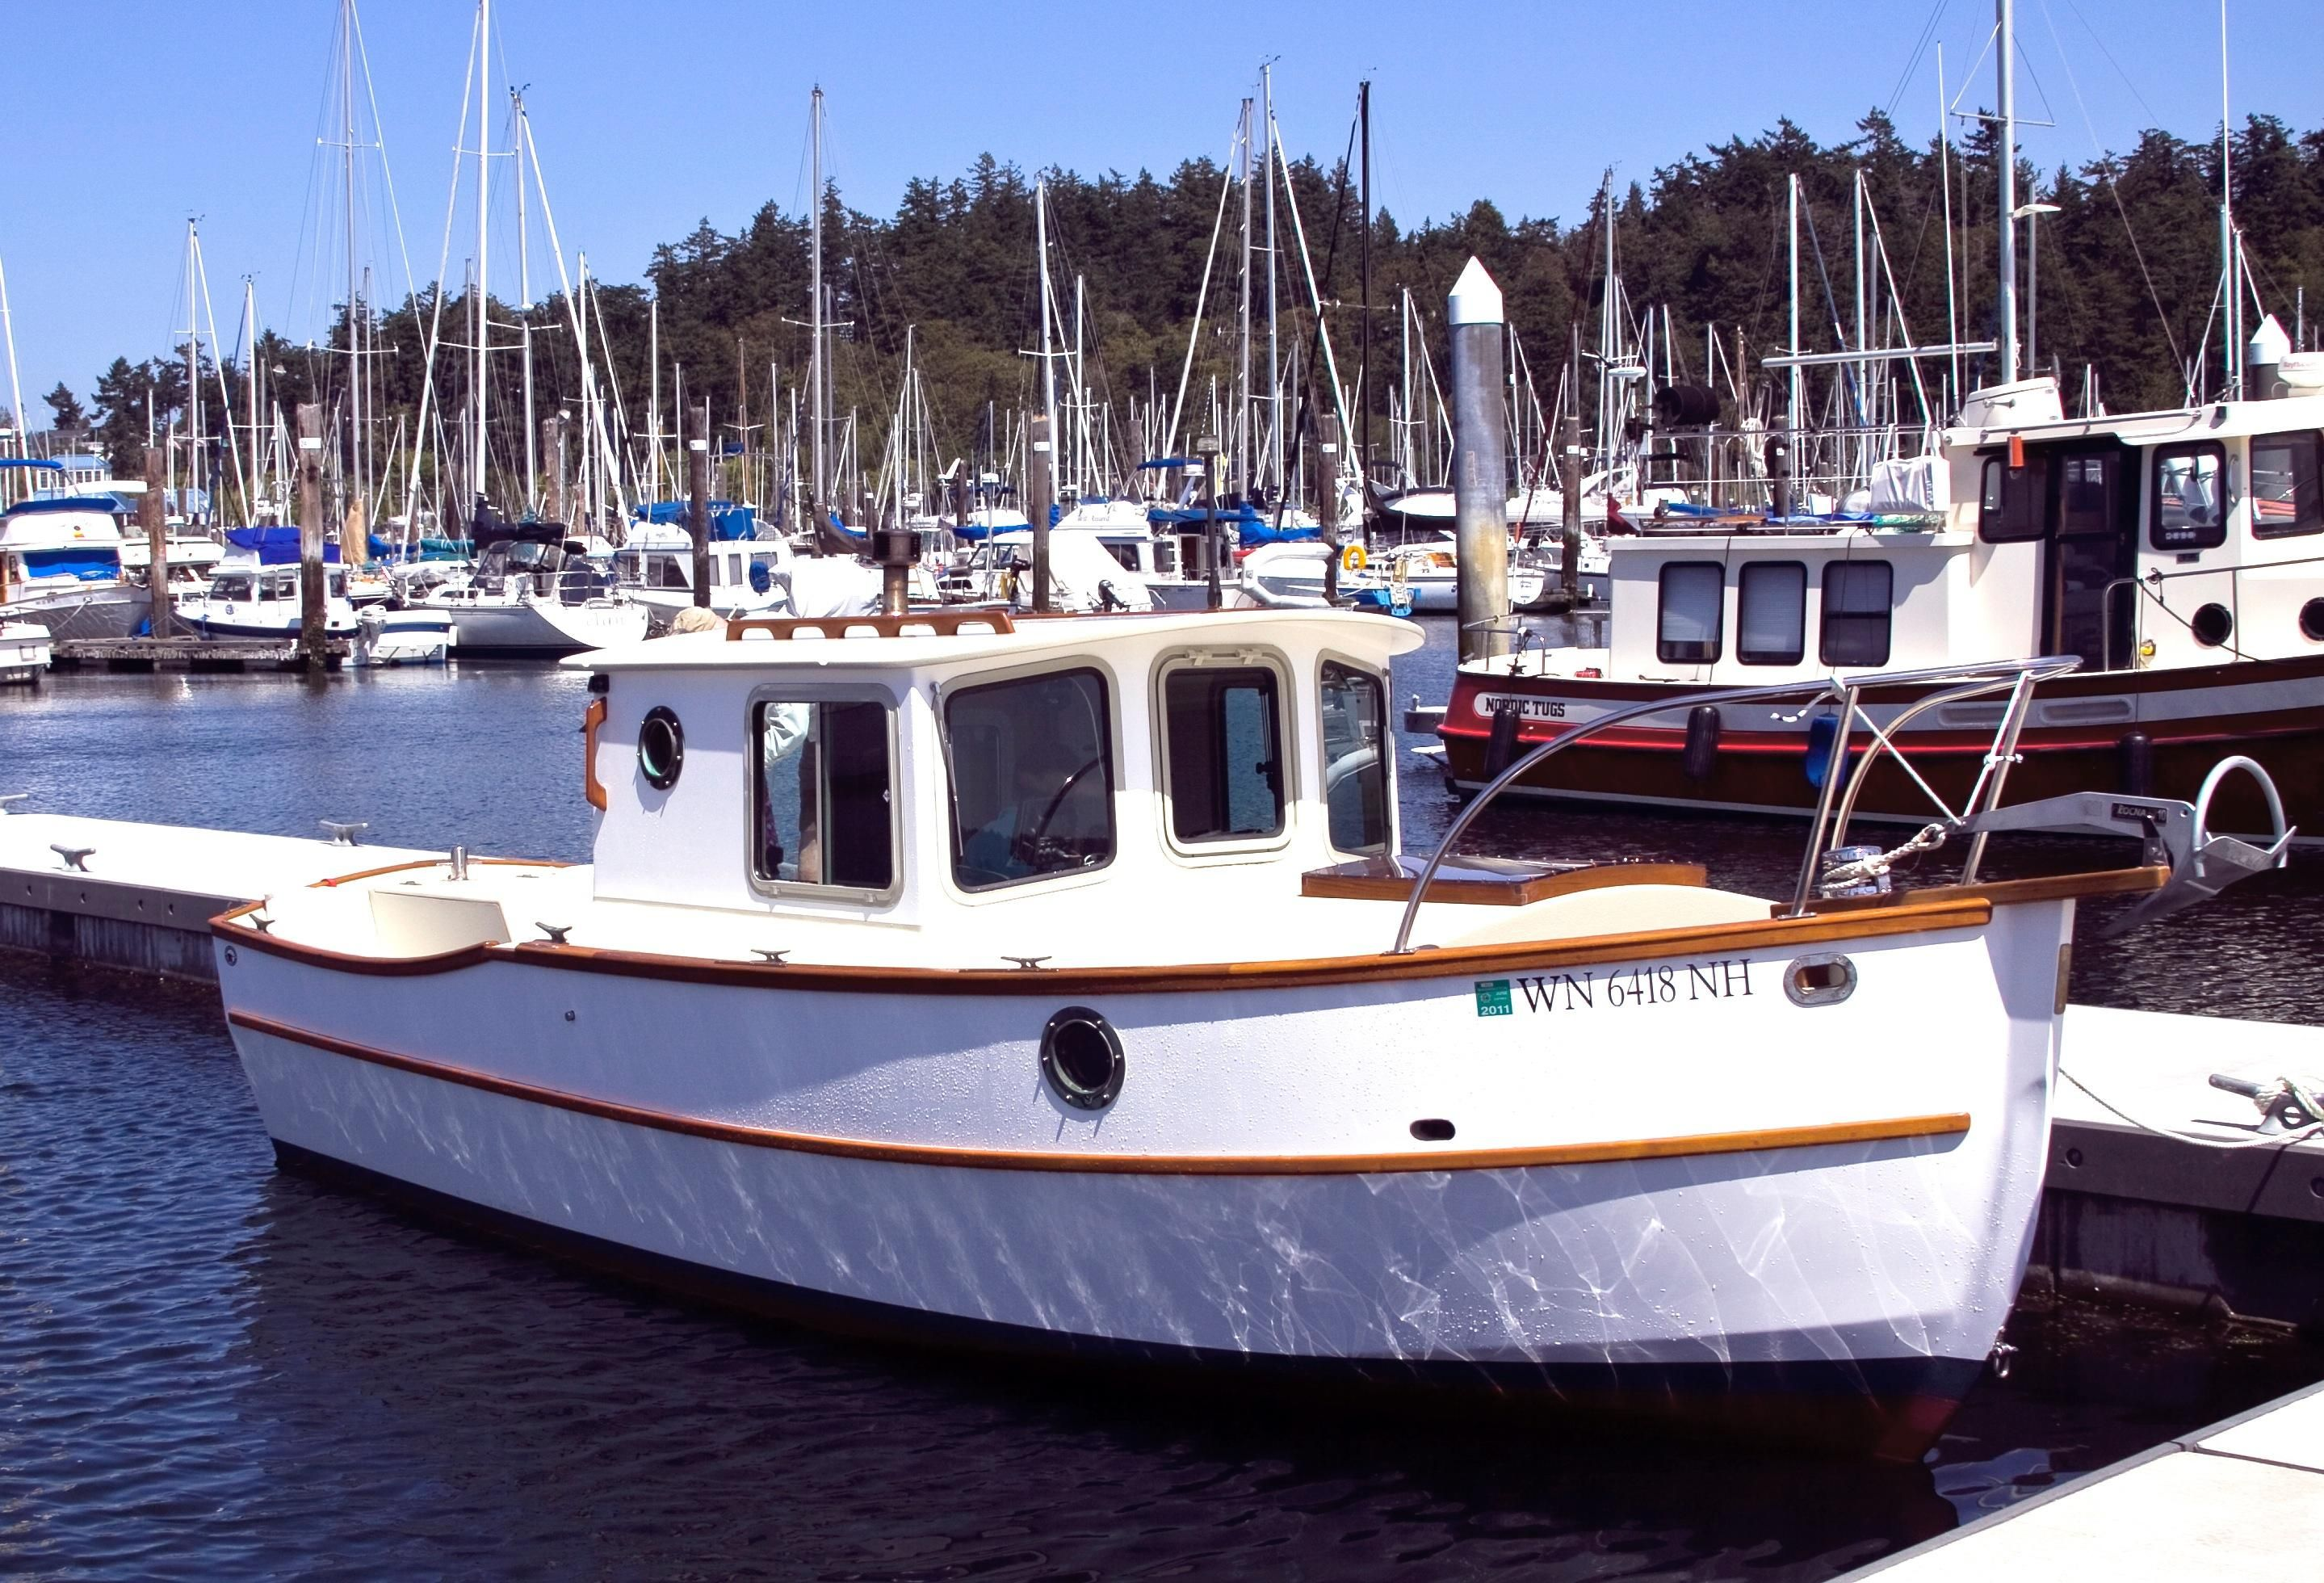 1992 Devlin Surf Scoter Power Boat For Sale 2000 Yamaha T50 Outboard Wiring